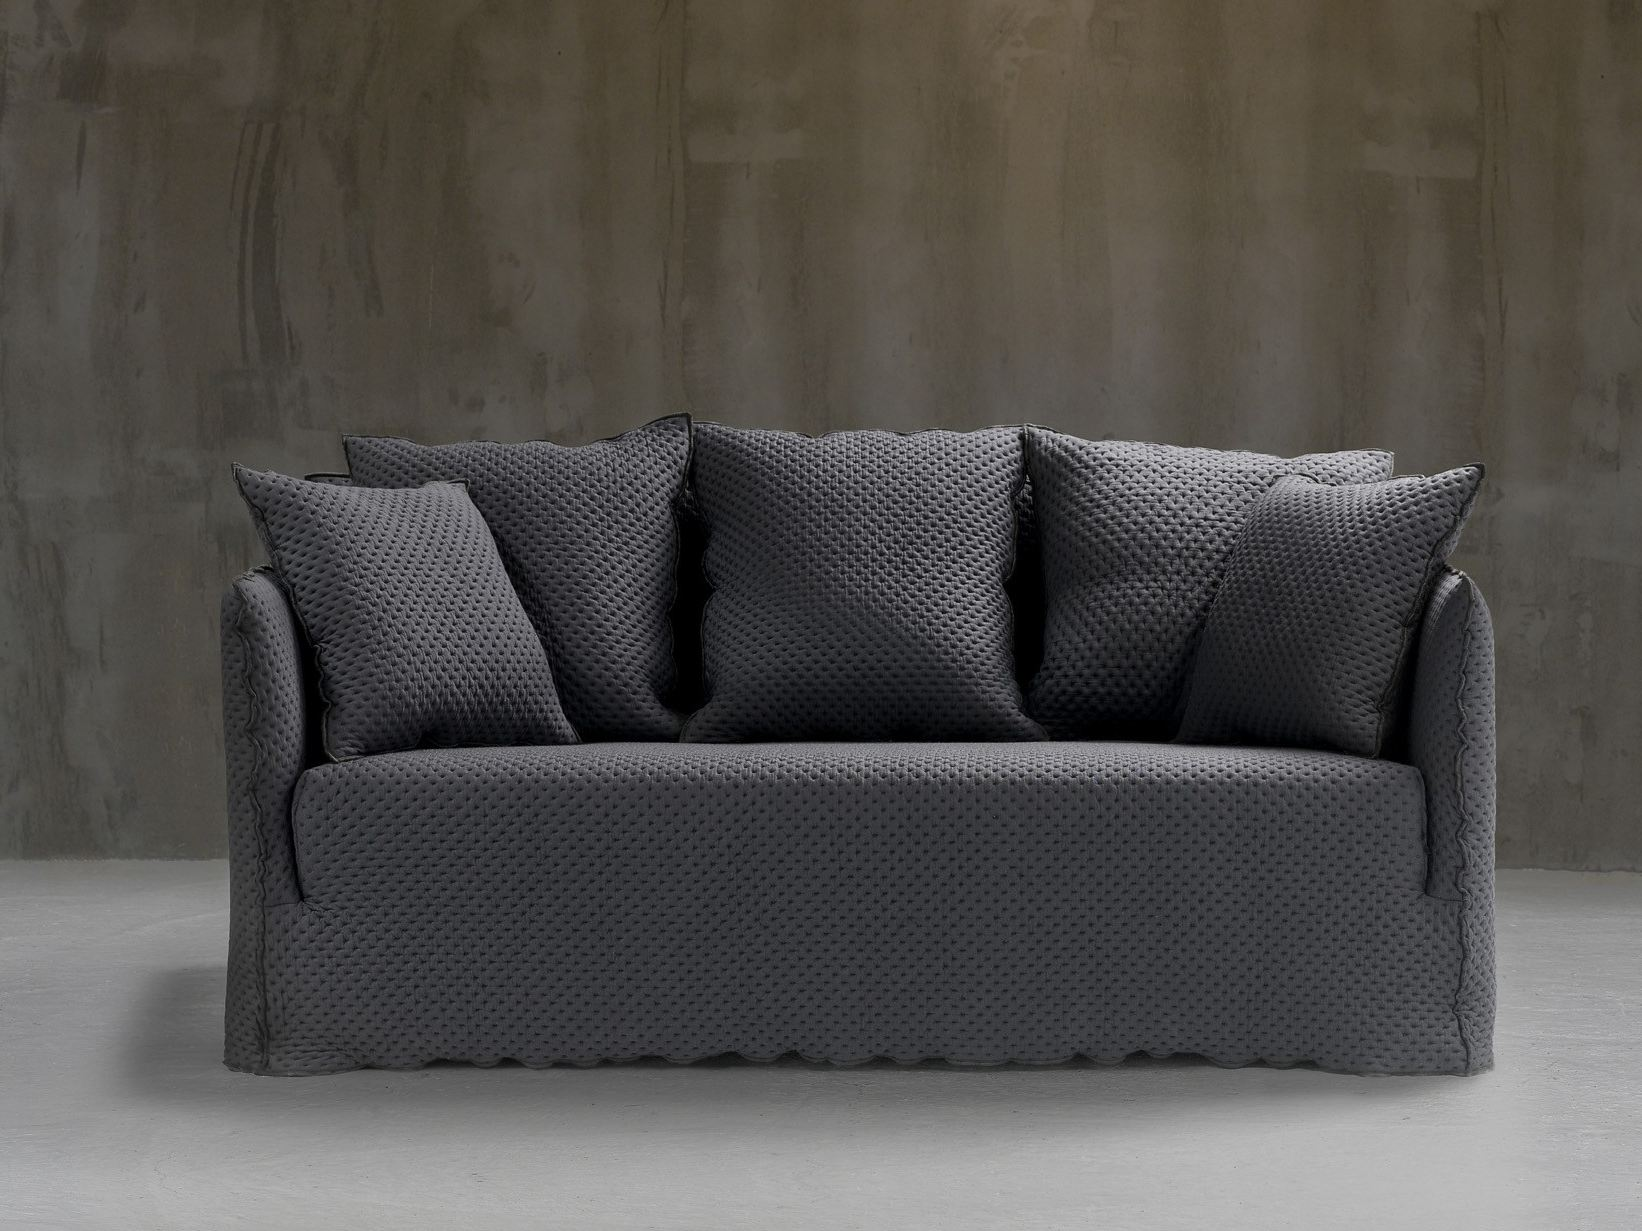 3 seater sofa with removable cover ghost 10 by gervasoni design paola navone. Black Bedroom Furniture Sets. Home Design Ideas